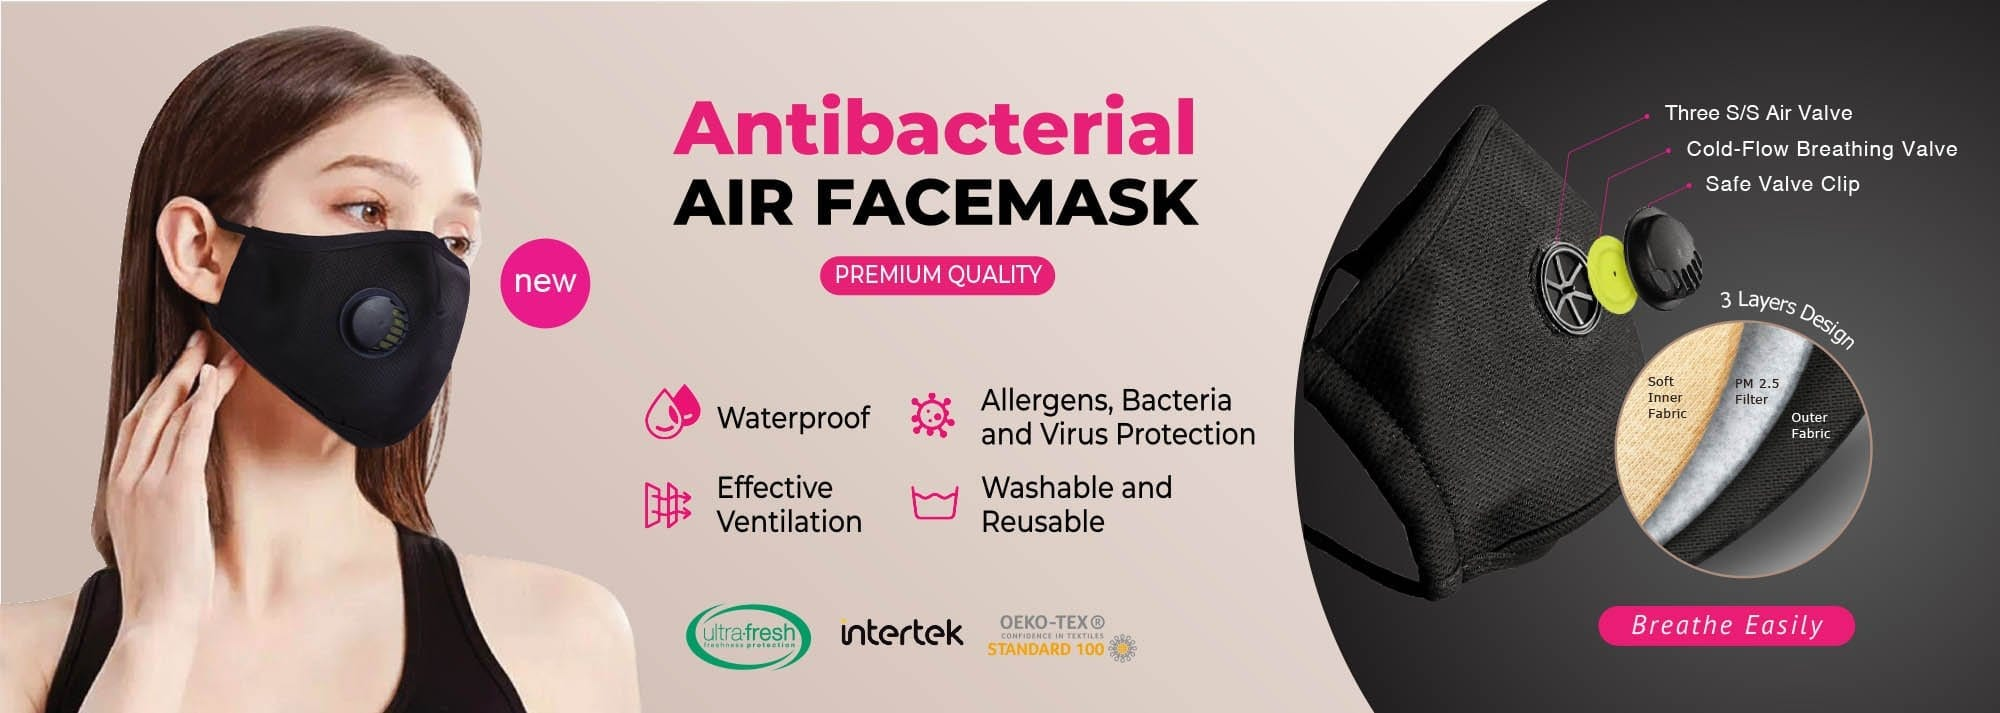 air face mask banner